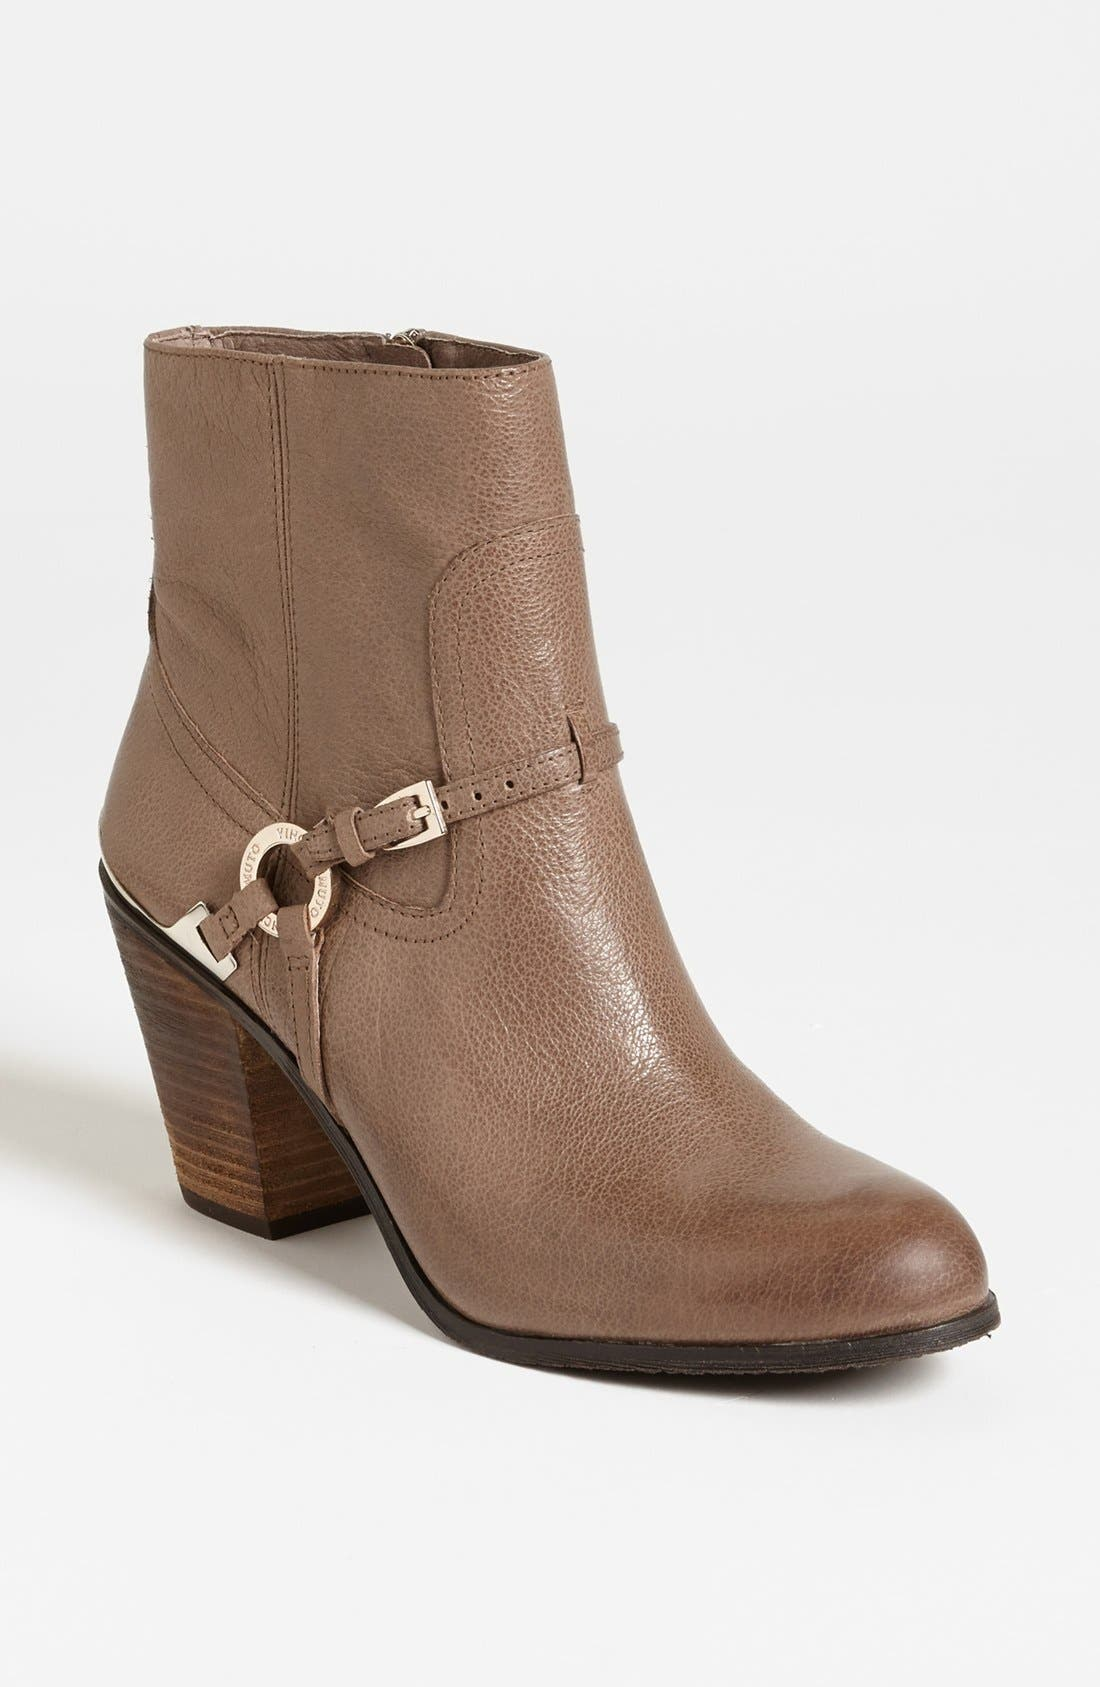 Alternate Image 1 Selected - Vince Camuto 'Gregger' Bootie